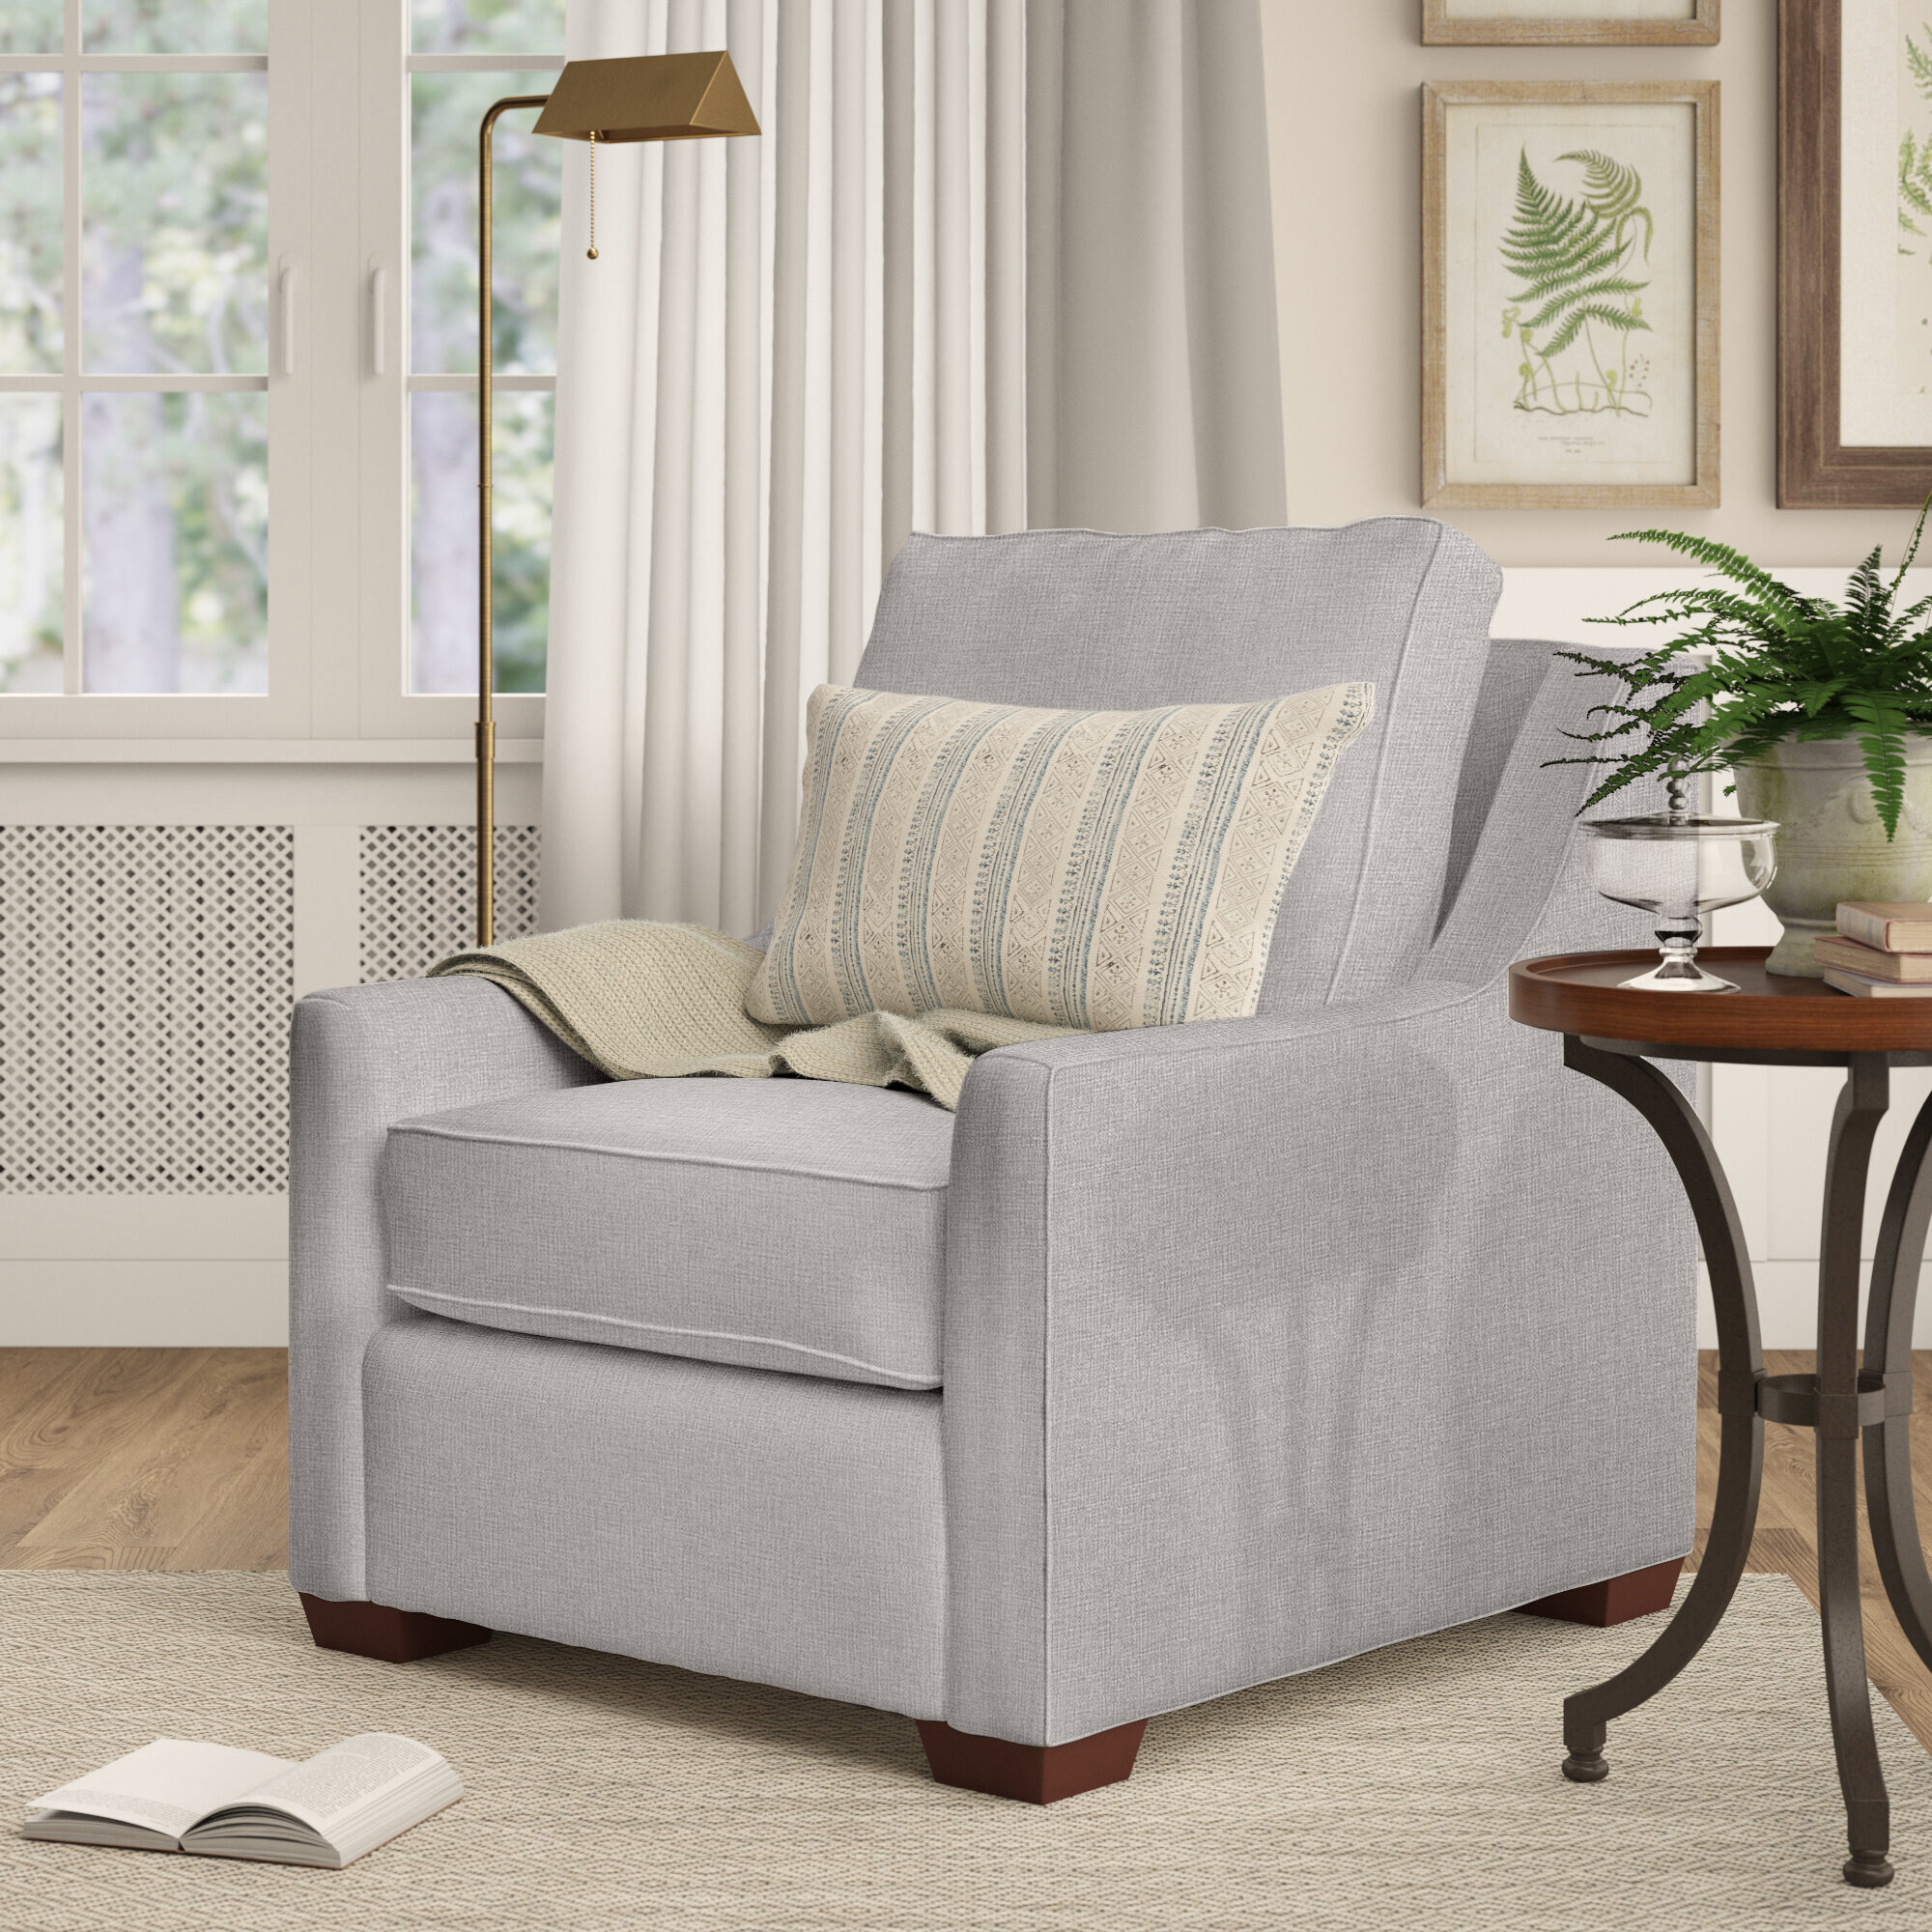 Silver Birch Lane™ Accent Chairs You'Ll Love In 2021 | Wayfair Pertaining To Young Armchairs By Birch Lane (View 11 of 15)